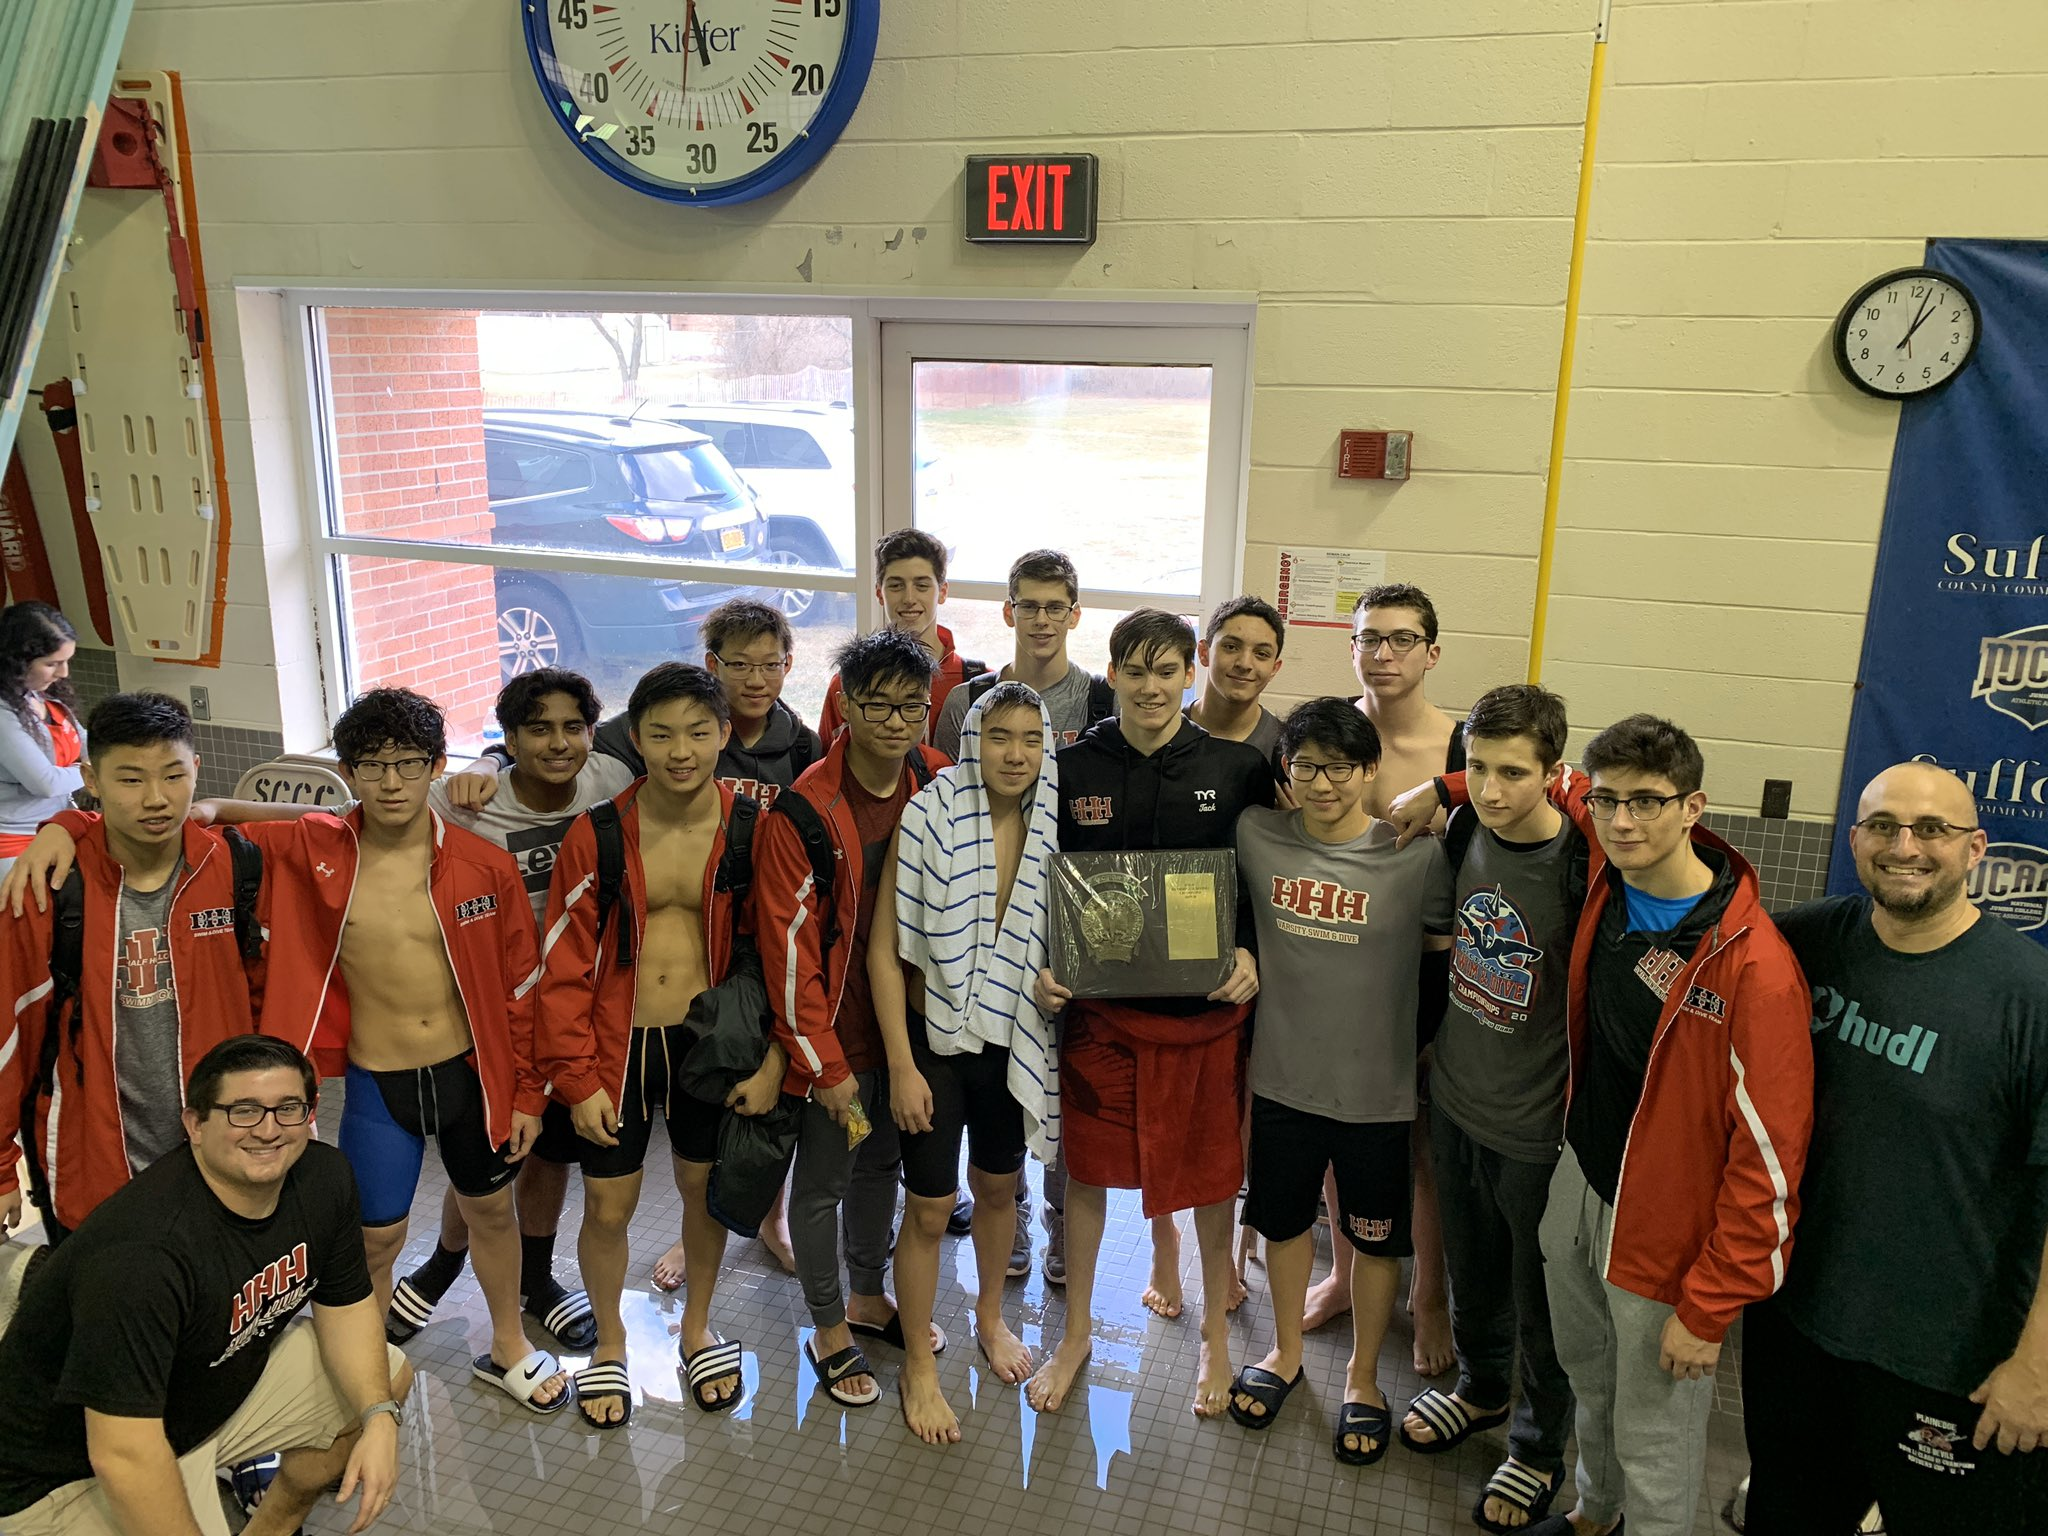 Varsity Boys Swimming & Diving Team Win 14th Straight Section XI County Championship